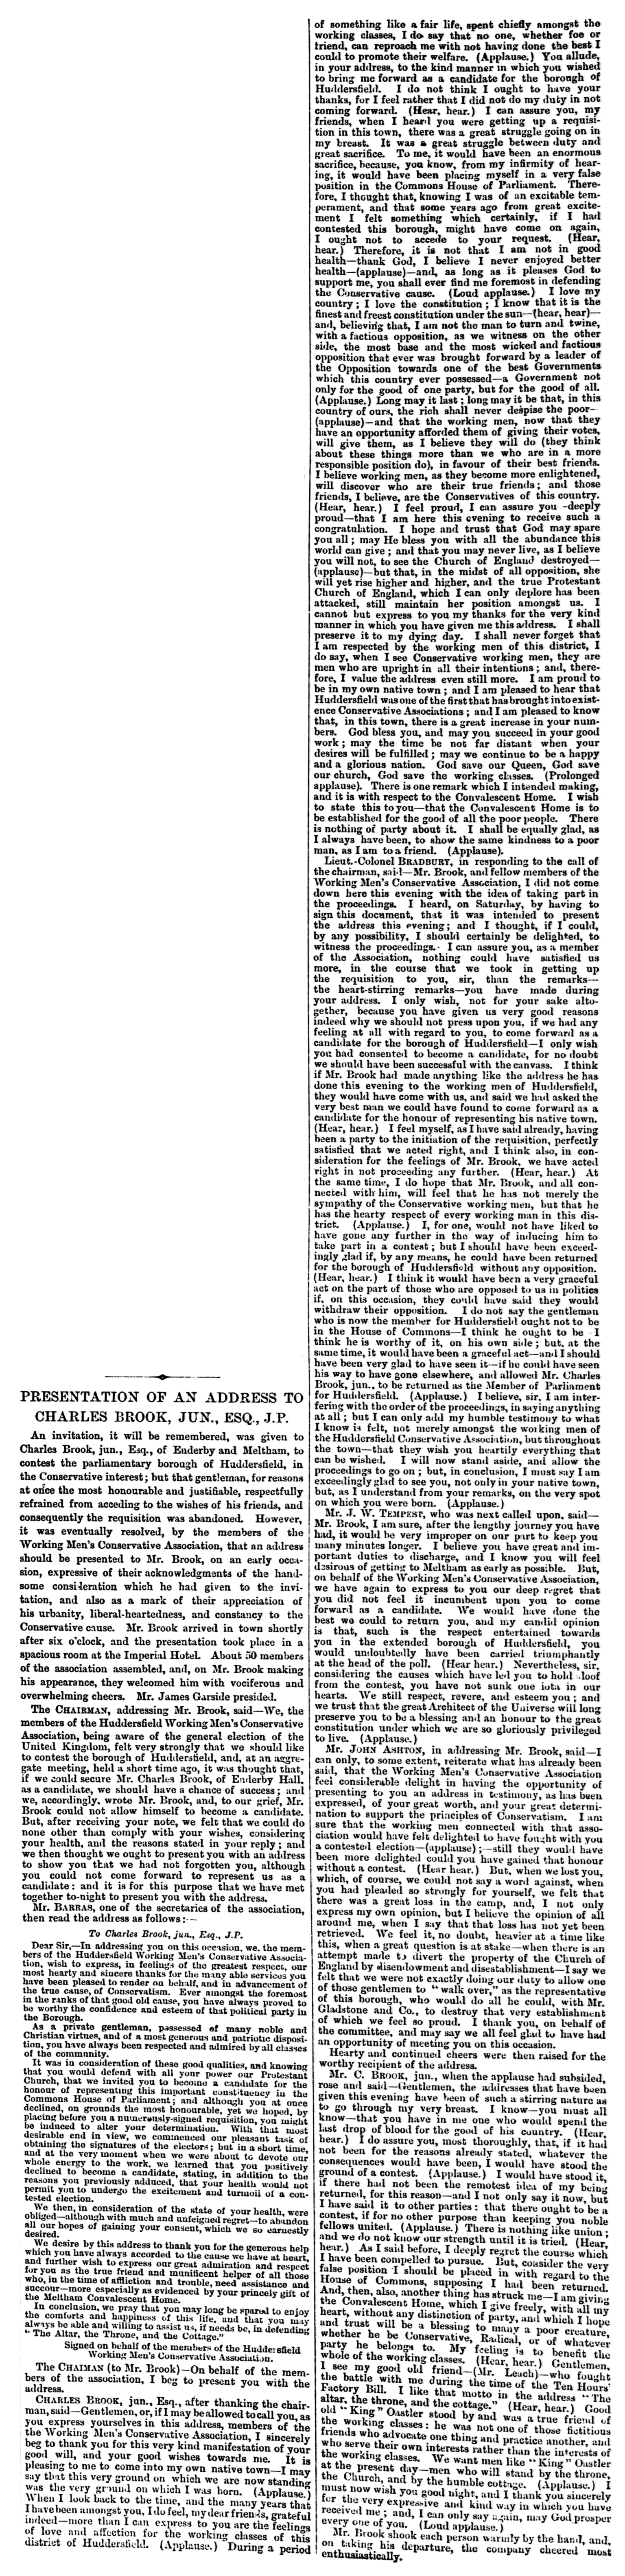 Huddersfield Chronicle 31 Oct 1868 - Presentation of an Address to Charles Brook.png